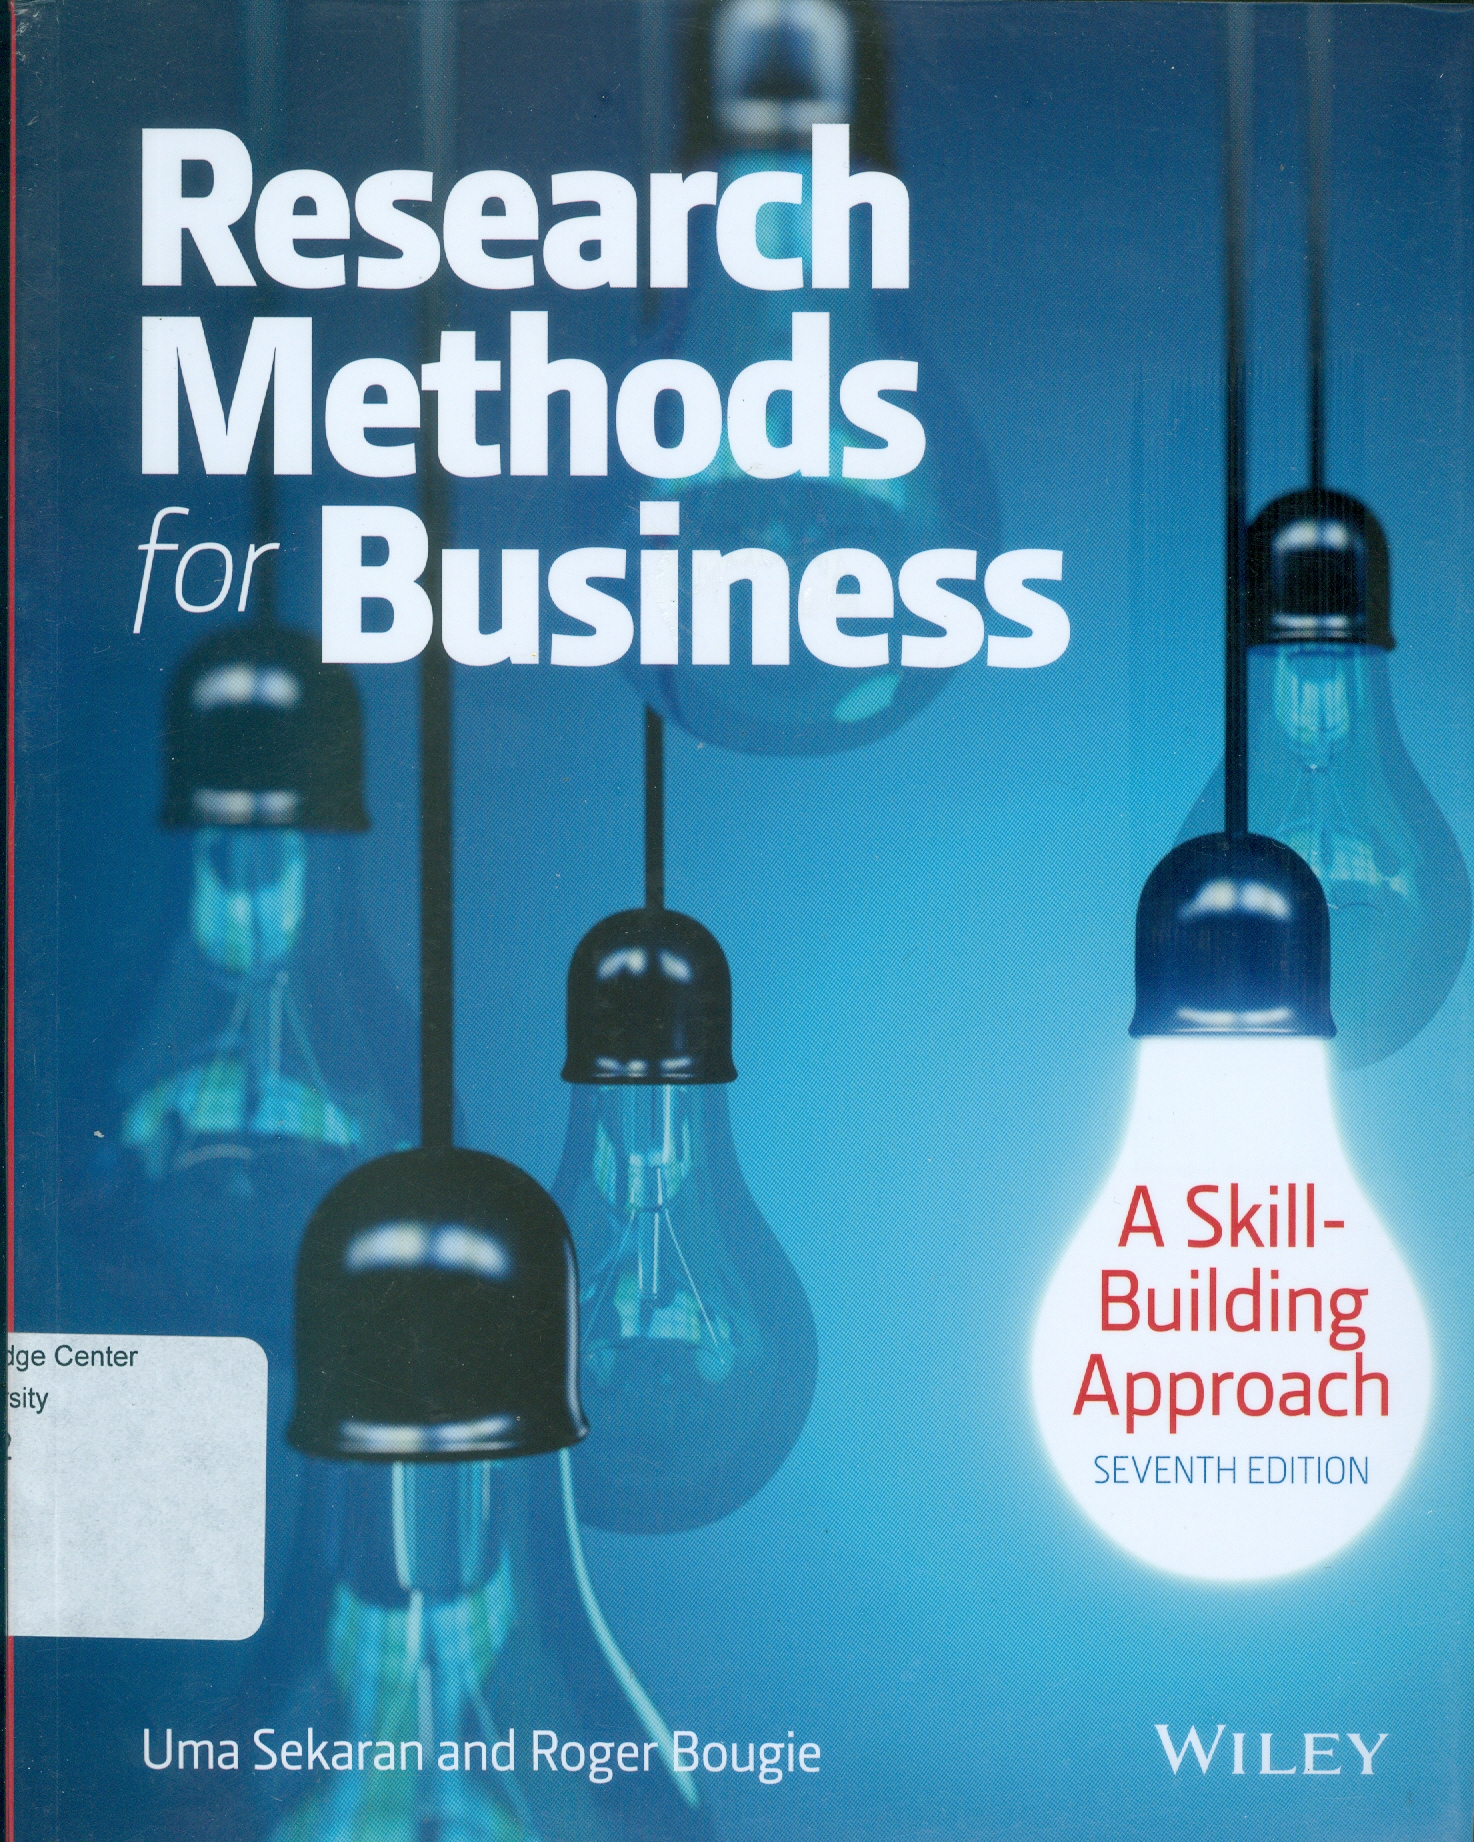 Research Methods for Business0001.jpg